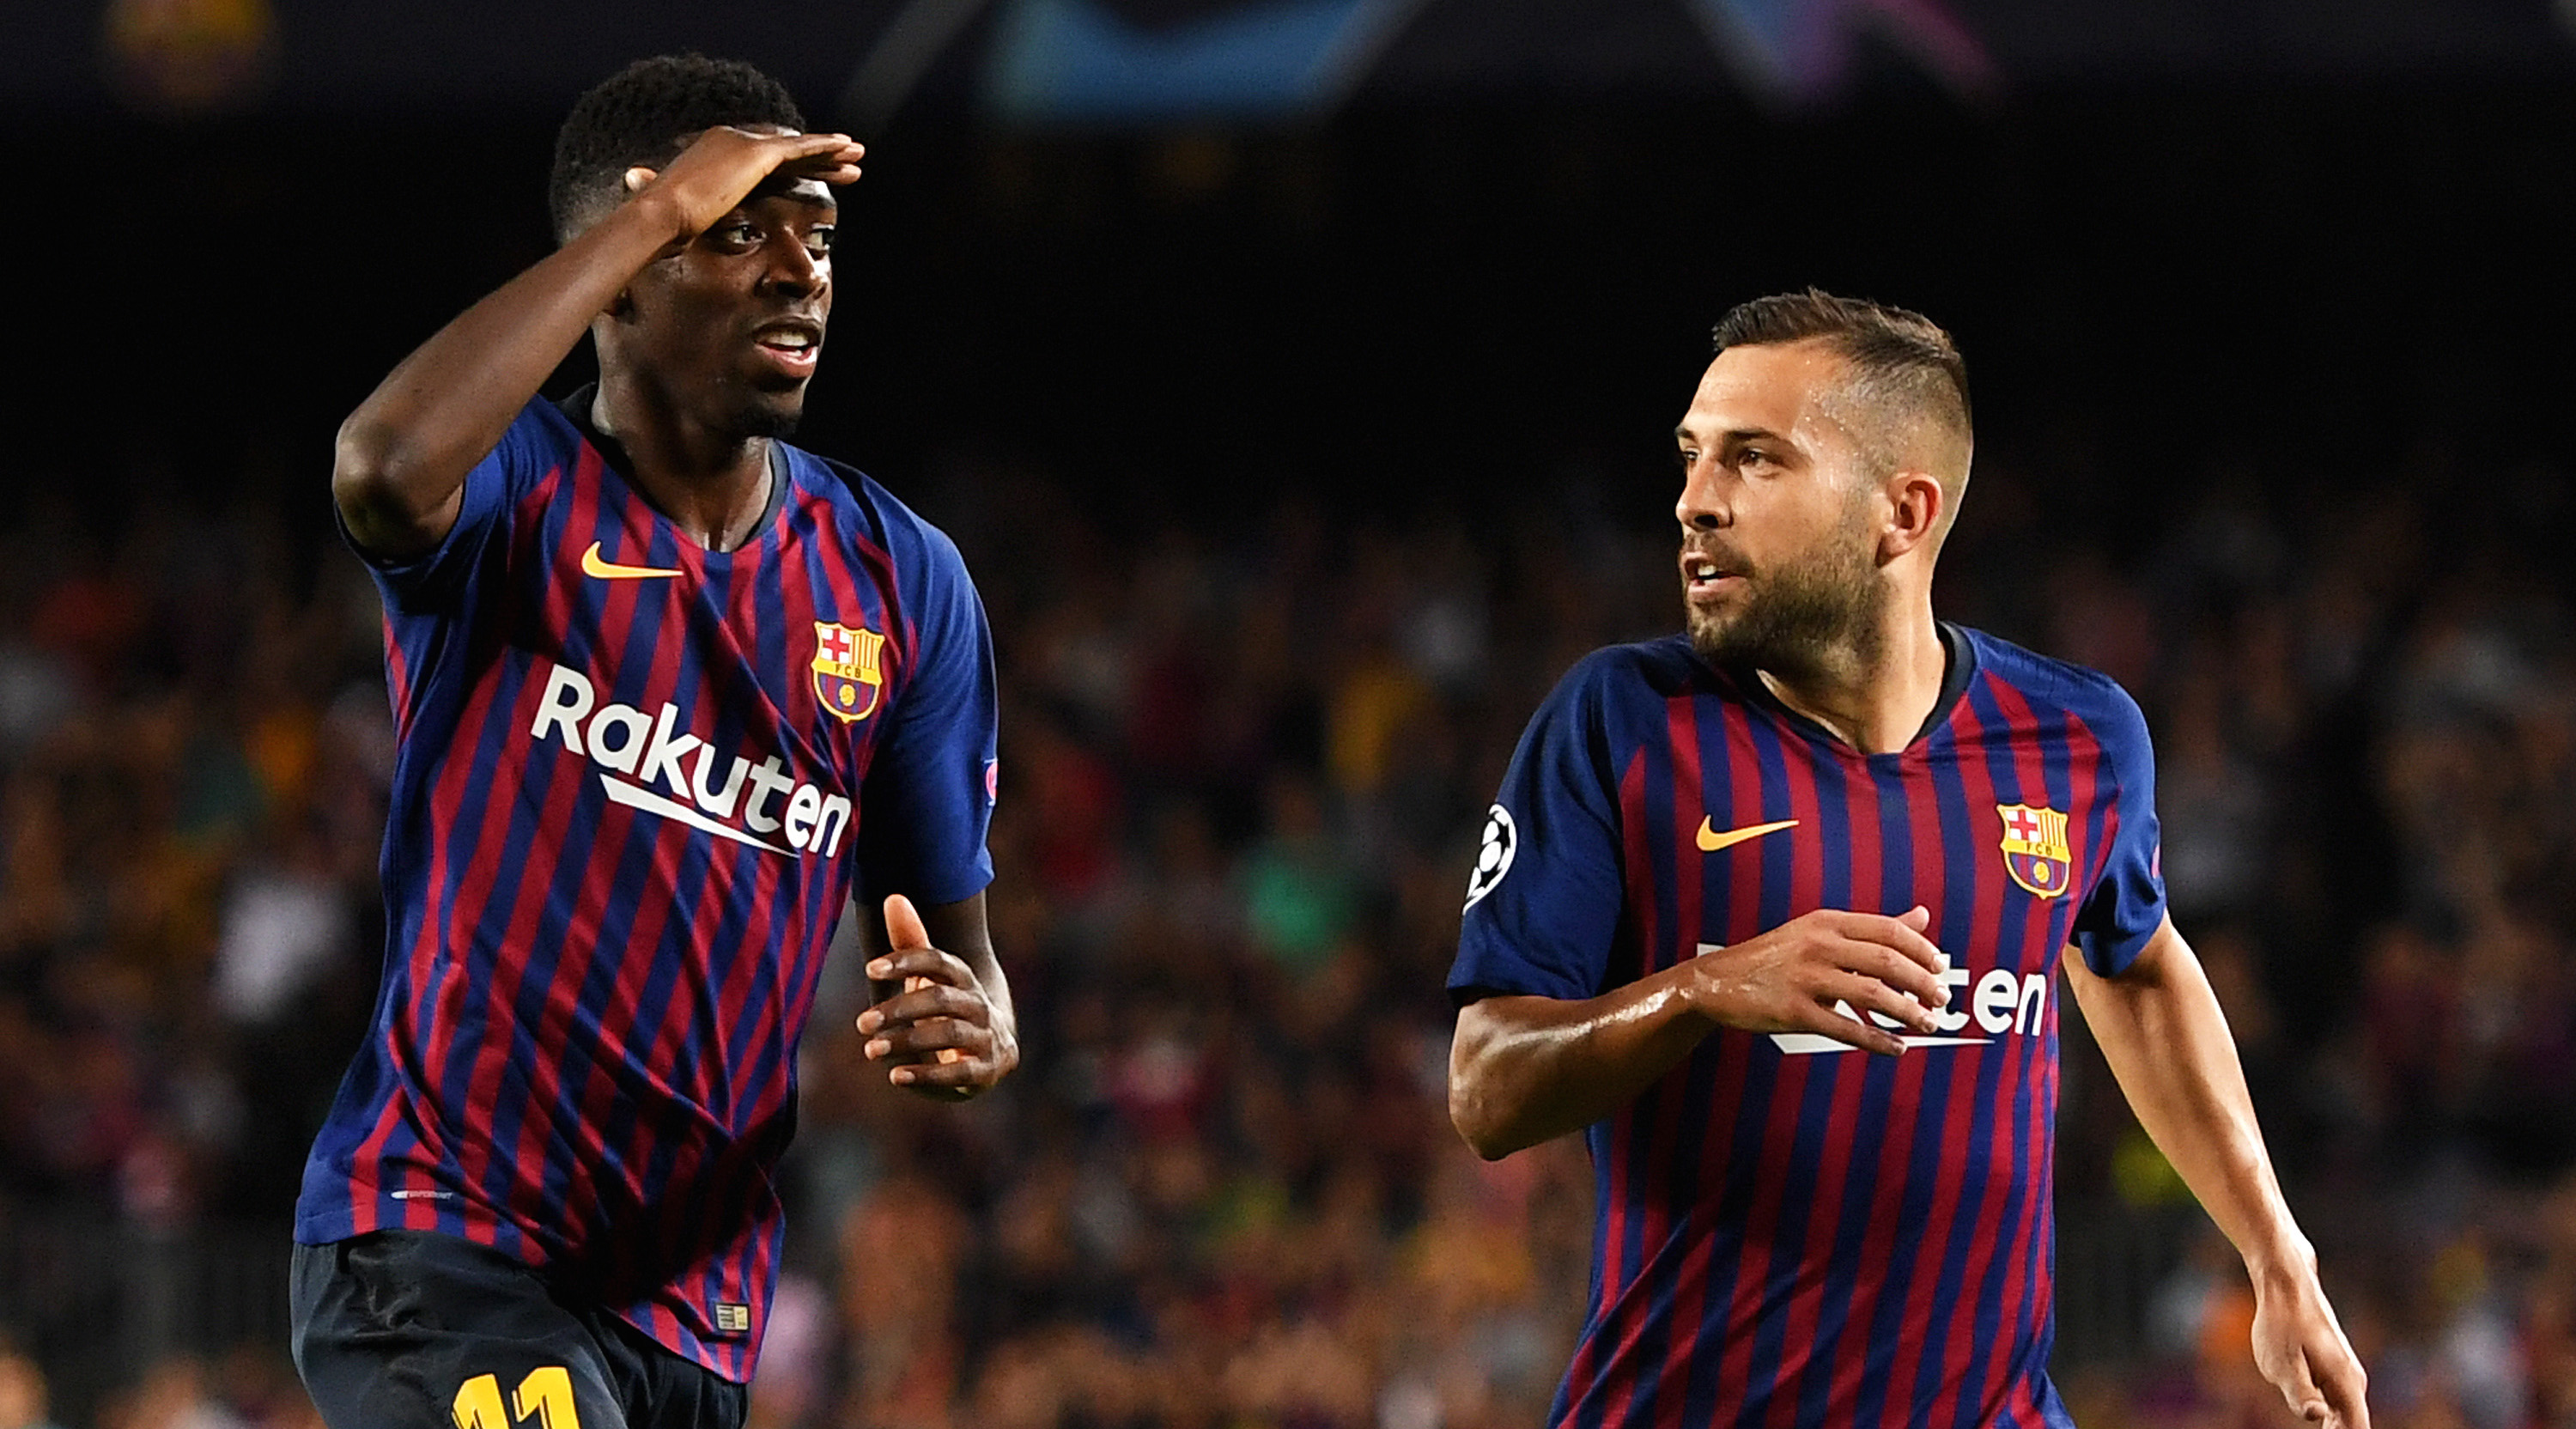 Ousmane Dembele of Barcelona celebrates with teammate Jordi Alba after scoring his team's second goal during the Group B match of the UEFA Champions League between FC Barcelona and PSV at Camp Nou on September 18, 2018 in Barcelona, Spain. (Photo by Alex Caparros/Getty Images)